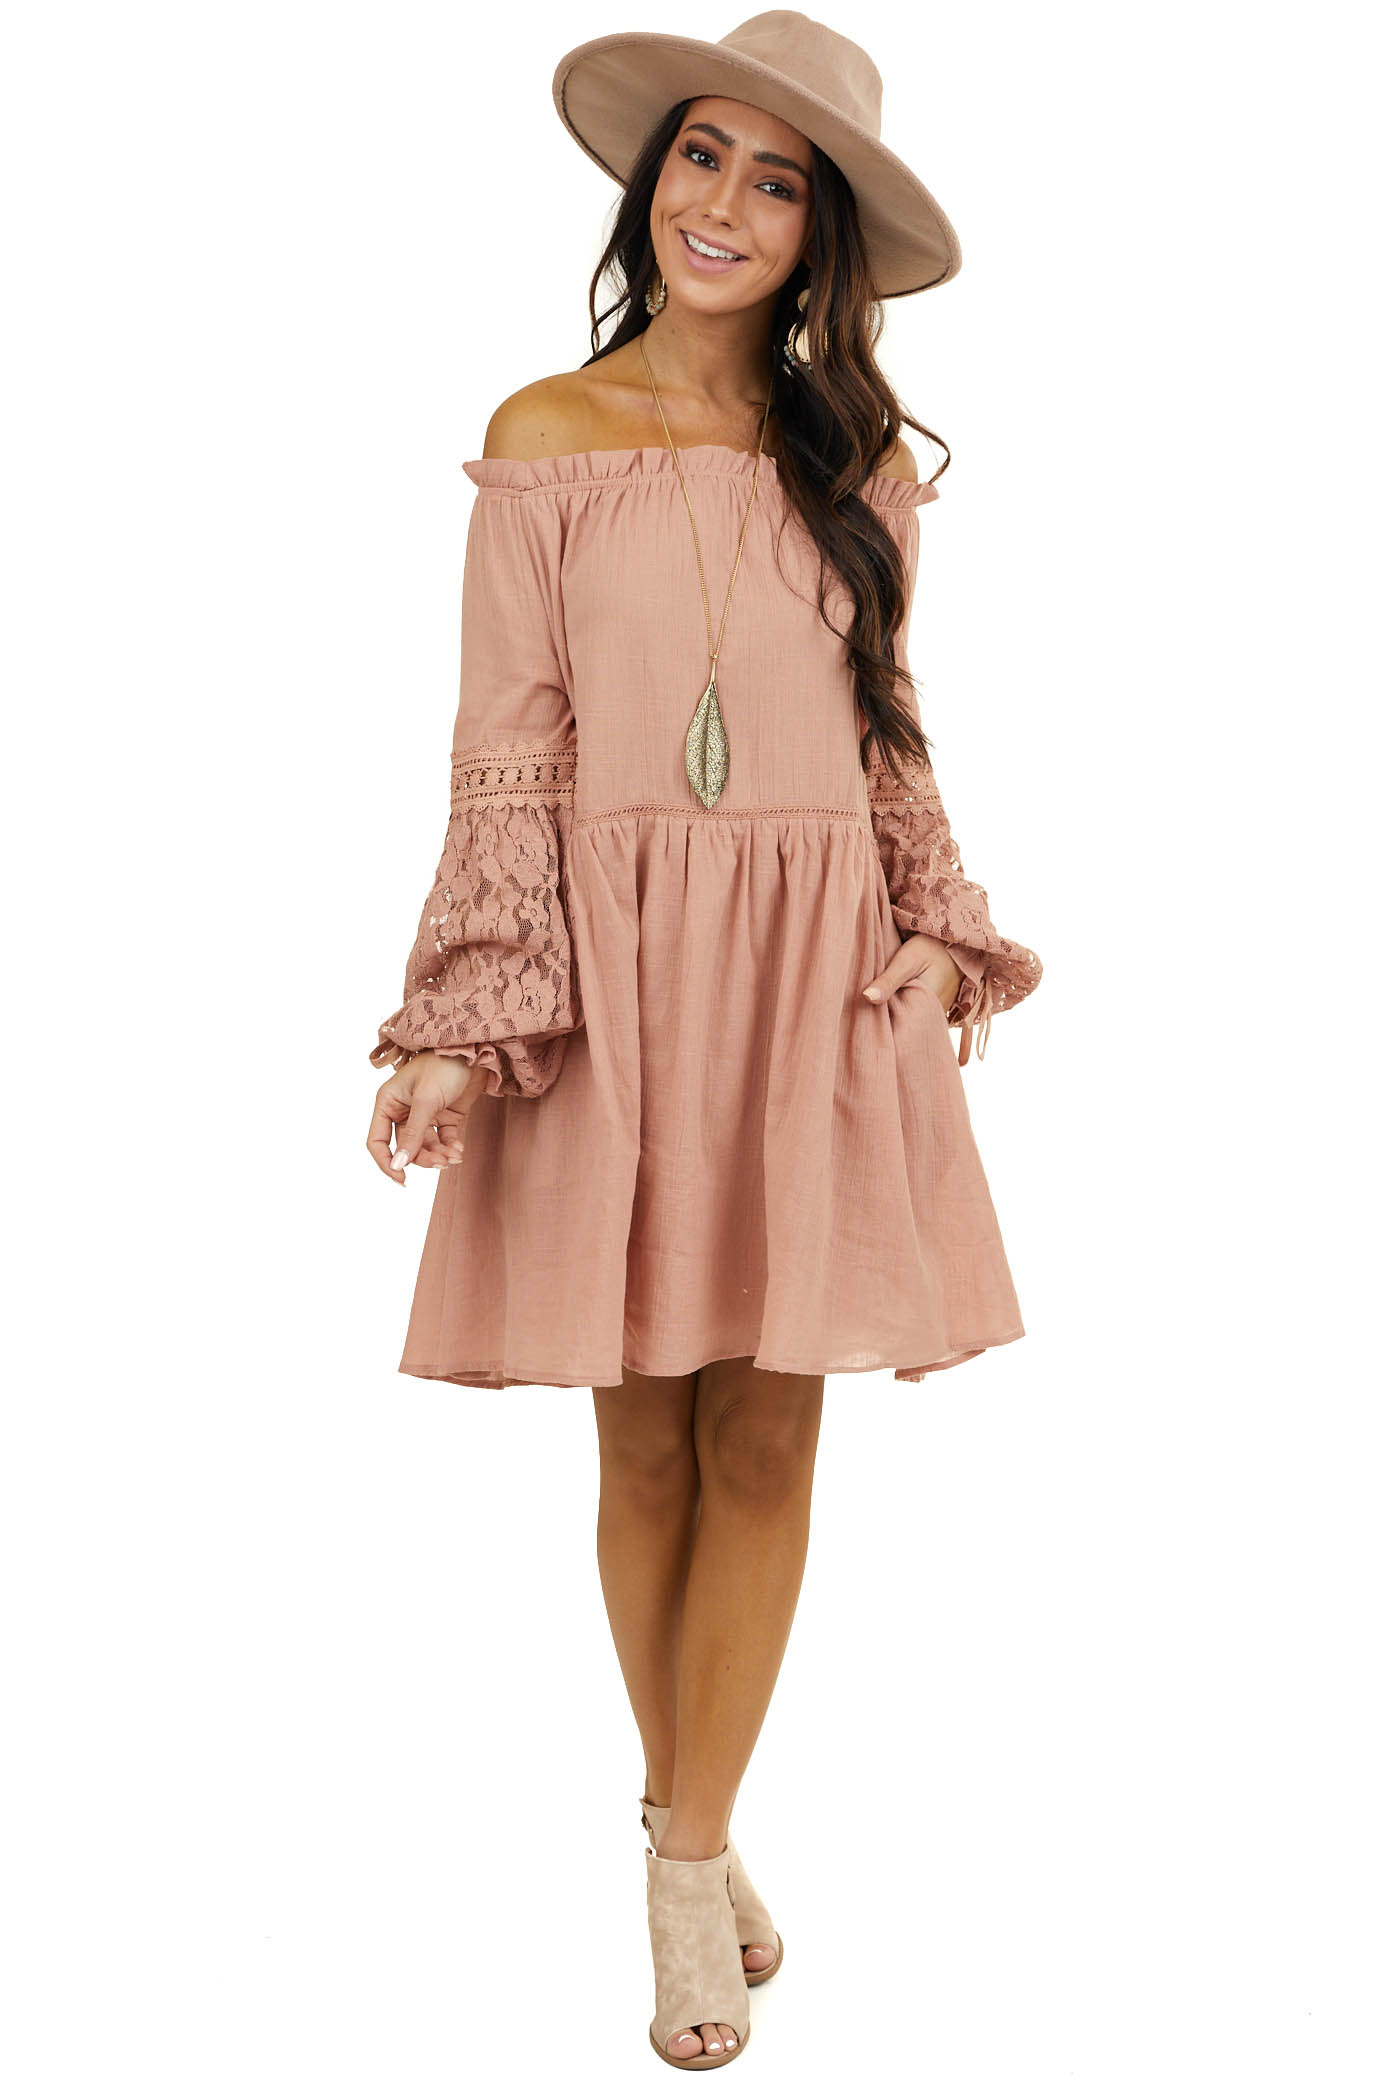 Dusty Blush Wide Neckline Short Dress with Lace Details